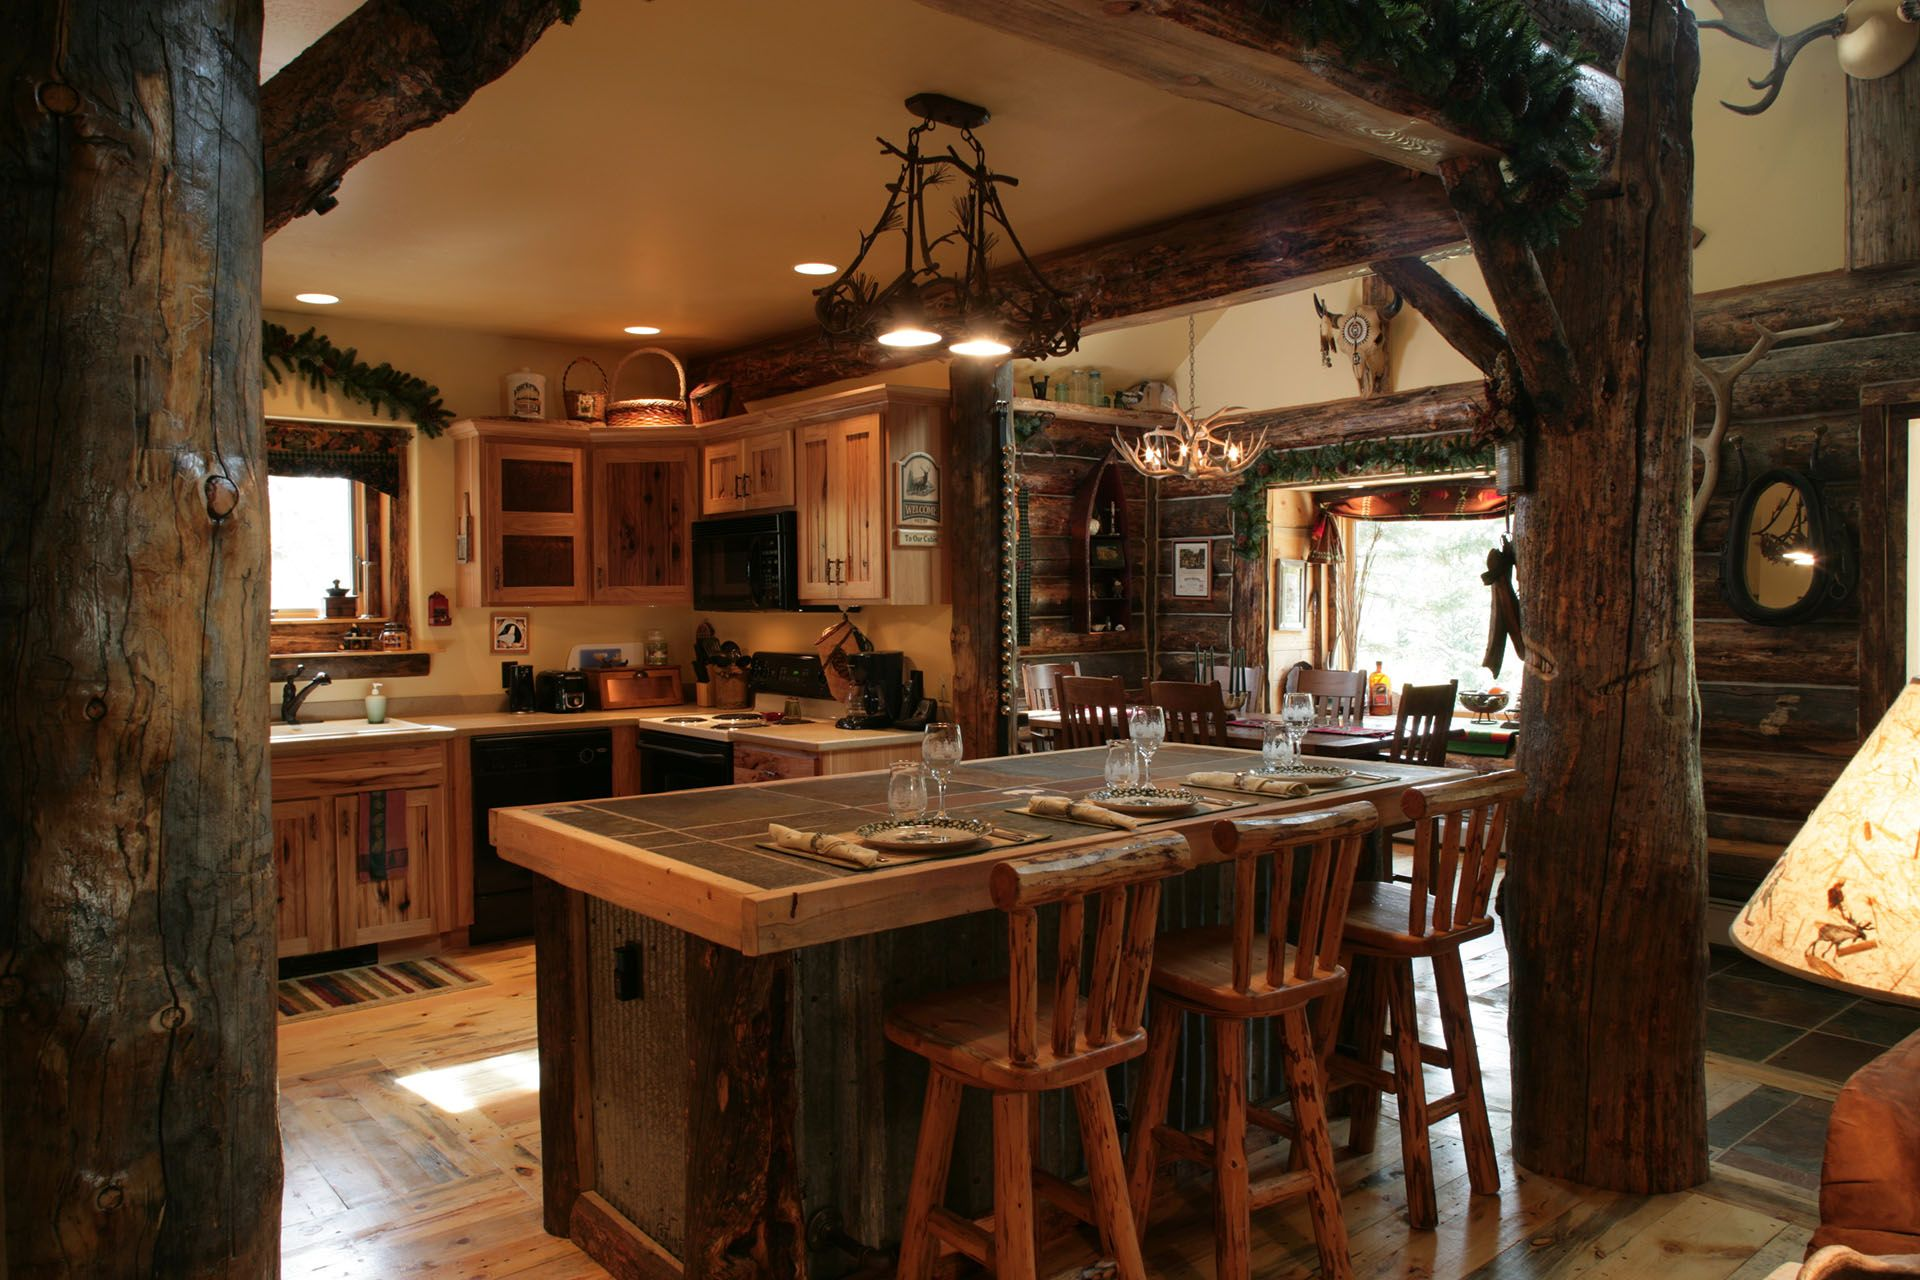 Rustic Kitchen Cabinets - Rustic Wooden Kitchen cabinet